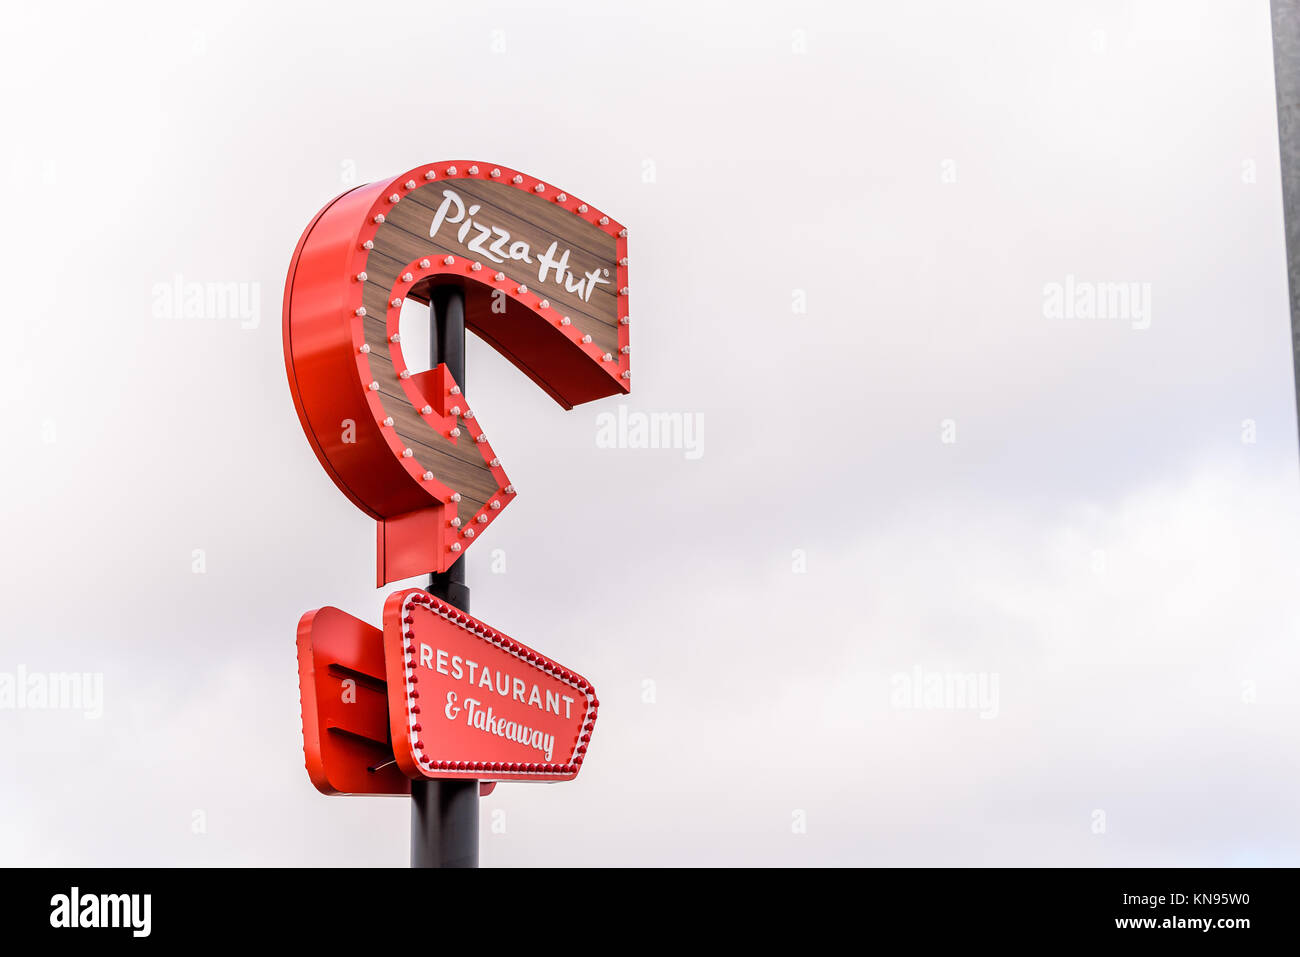 Pizza Hut Logo Stock Photos & Pizza Hut Logo Stock Images - Alamy